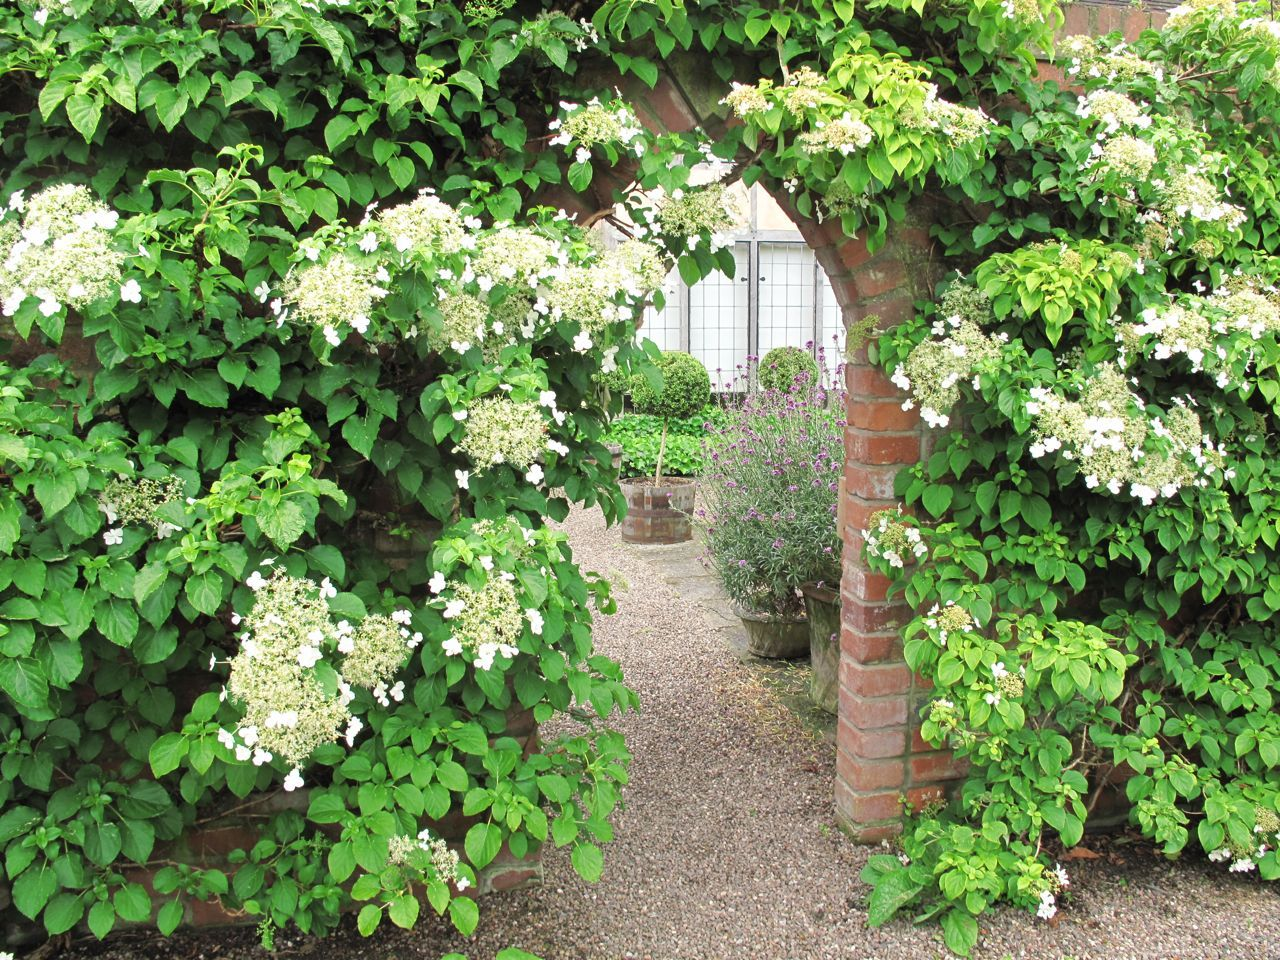 ROCK ROSE: BACK TO ENGAND AND MORE GARDENS